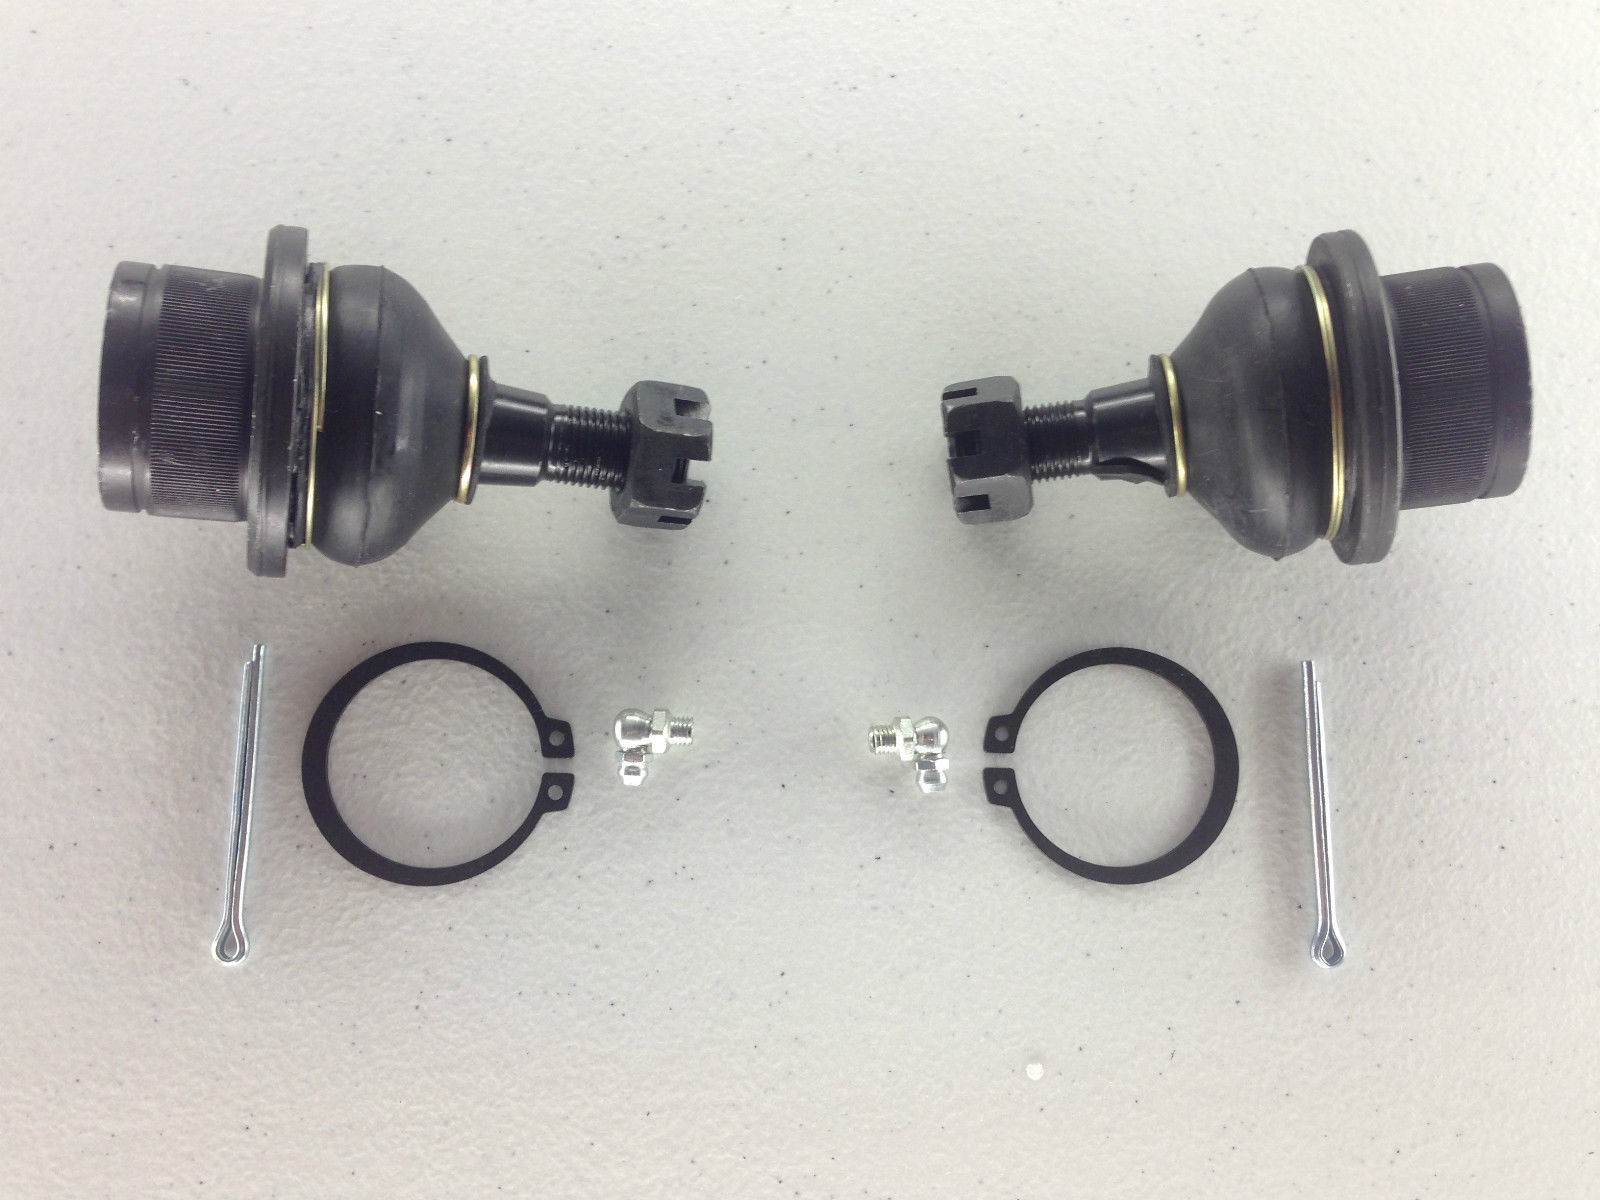 hight resolution of all products 2 lower ball joints 1 upper control arm ford explorer ranger 1 year warranty 2 lower ball joints 1 upper control arm ford explorer